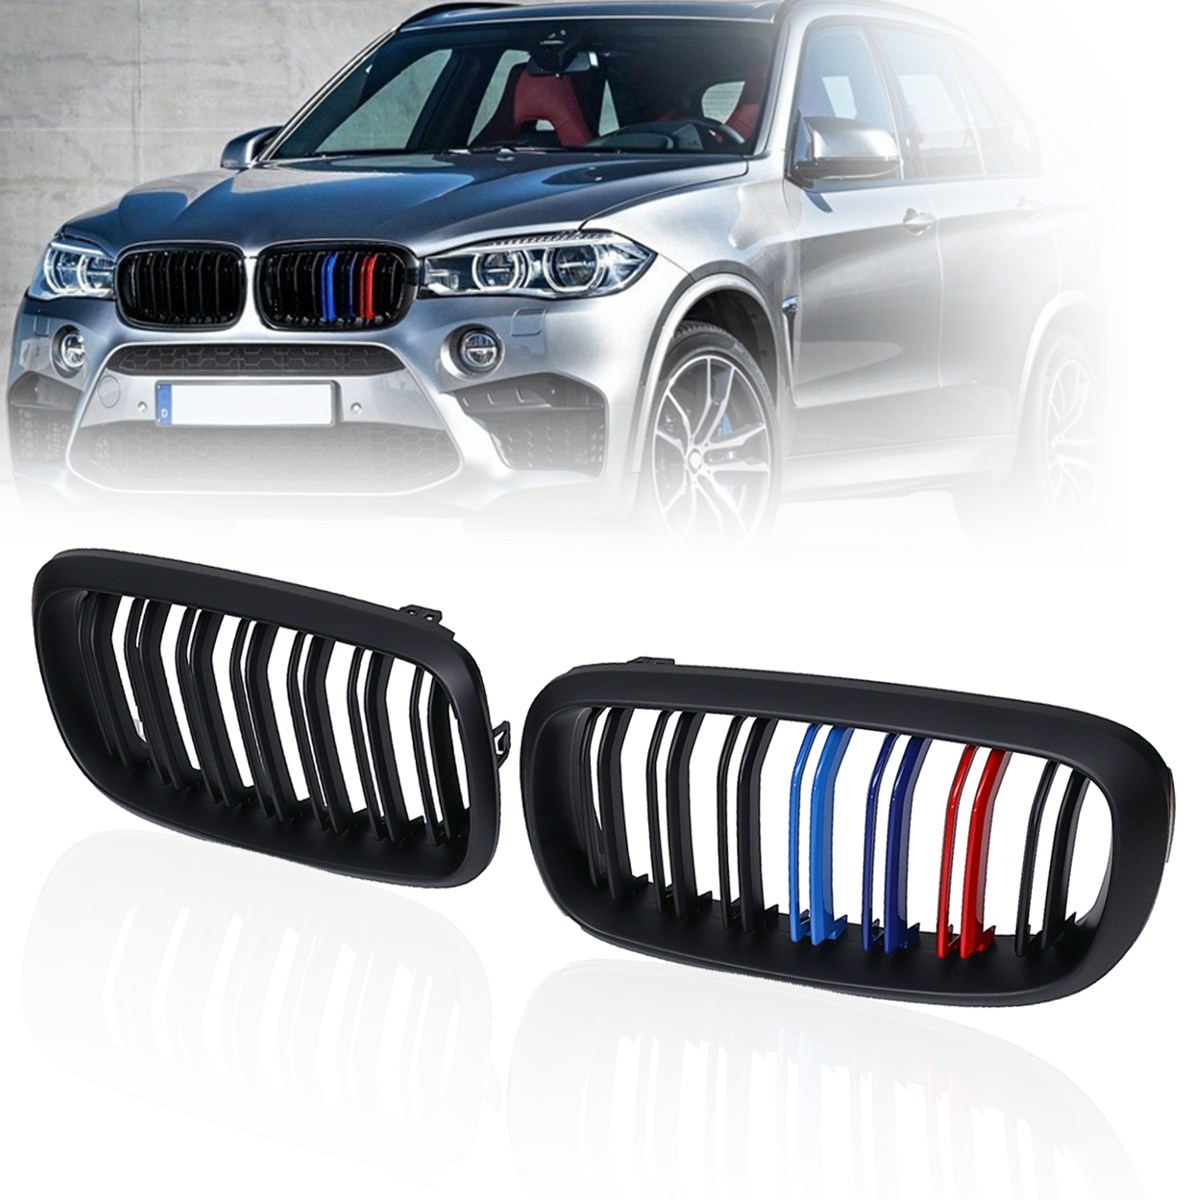 #28-F15MFG3B Pair Matte Gloss Black M Color Front Double Slat Kidney Grille For BMW F86 F15 F16 X5 X6 X5M F85 X6M F86 2016 2017 pair gloss matt black m color front kidney racing bumper grille grill for bmw x5 f15 x6 f16 x5m f85 x6m f86 2014 2015 2016 2017